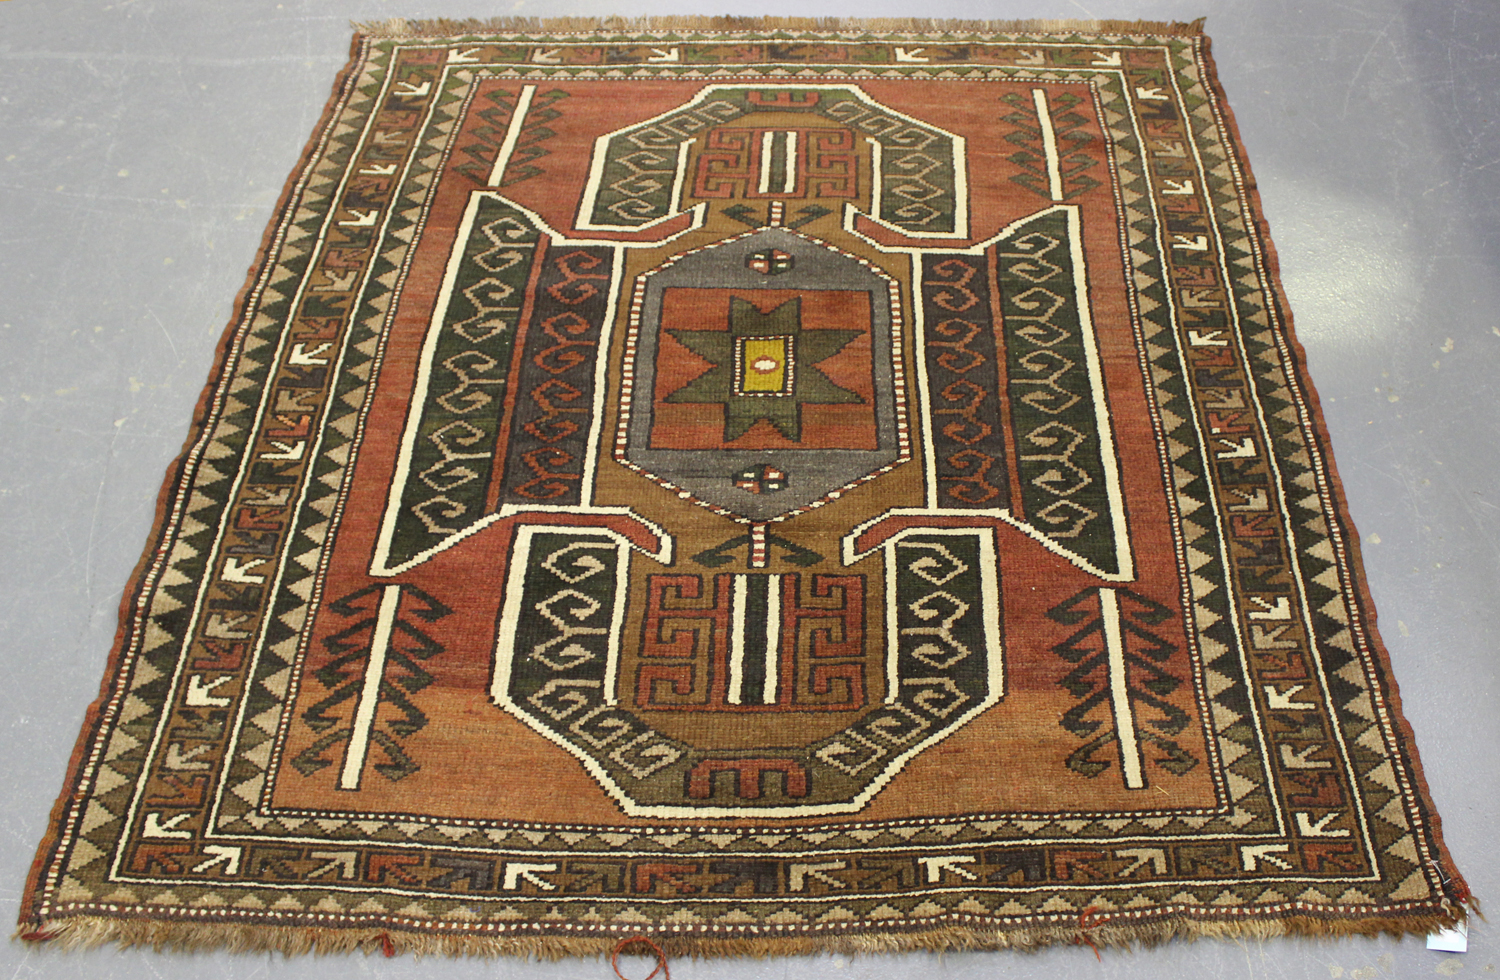 Lot 2924 - A Turkish 'Kazak' design rug, mid-20th century, the shaded claret field with a large shaped